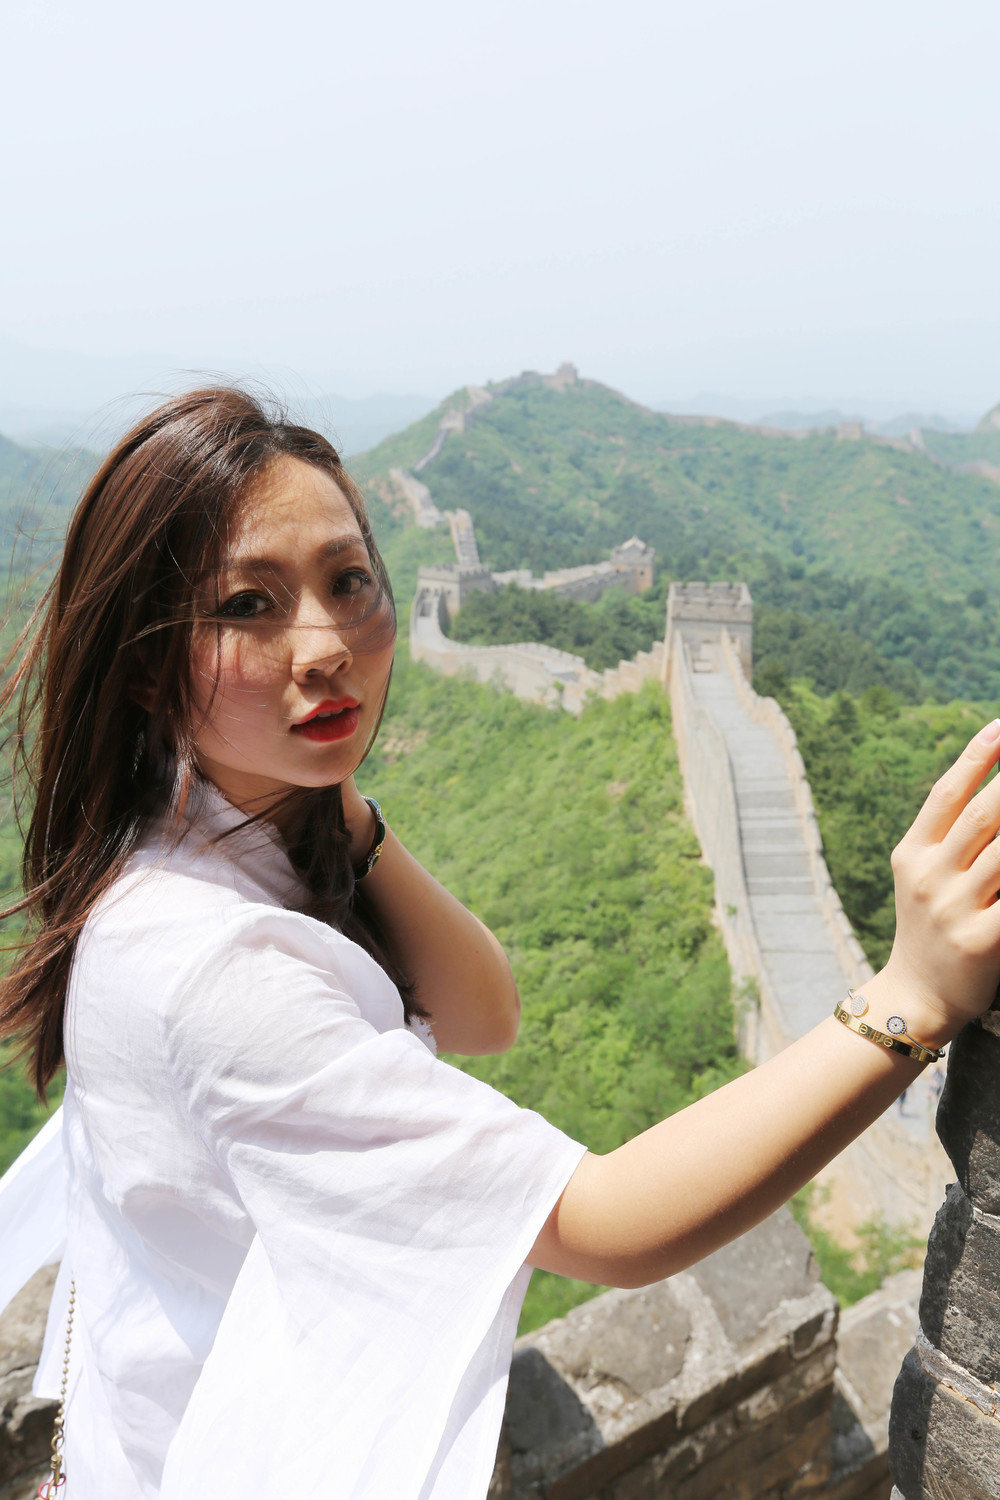 Beijing greatwall fashion shoot2.jpg